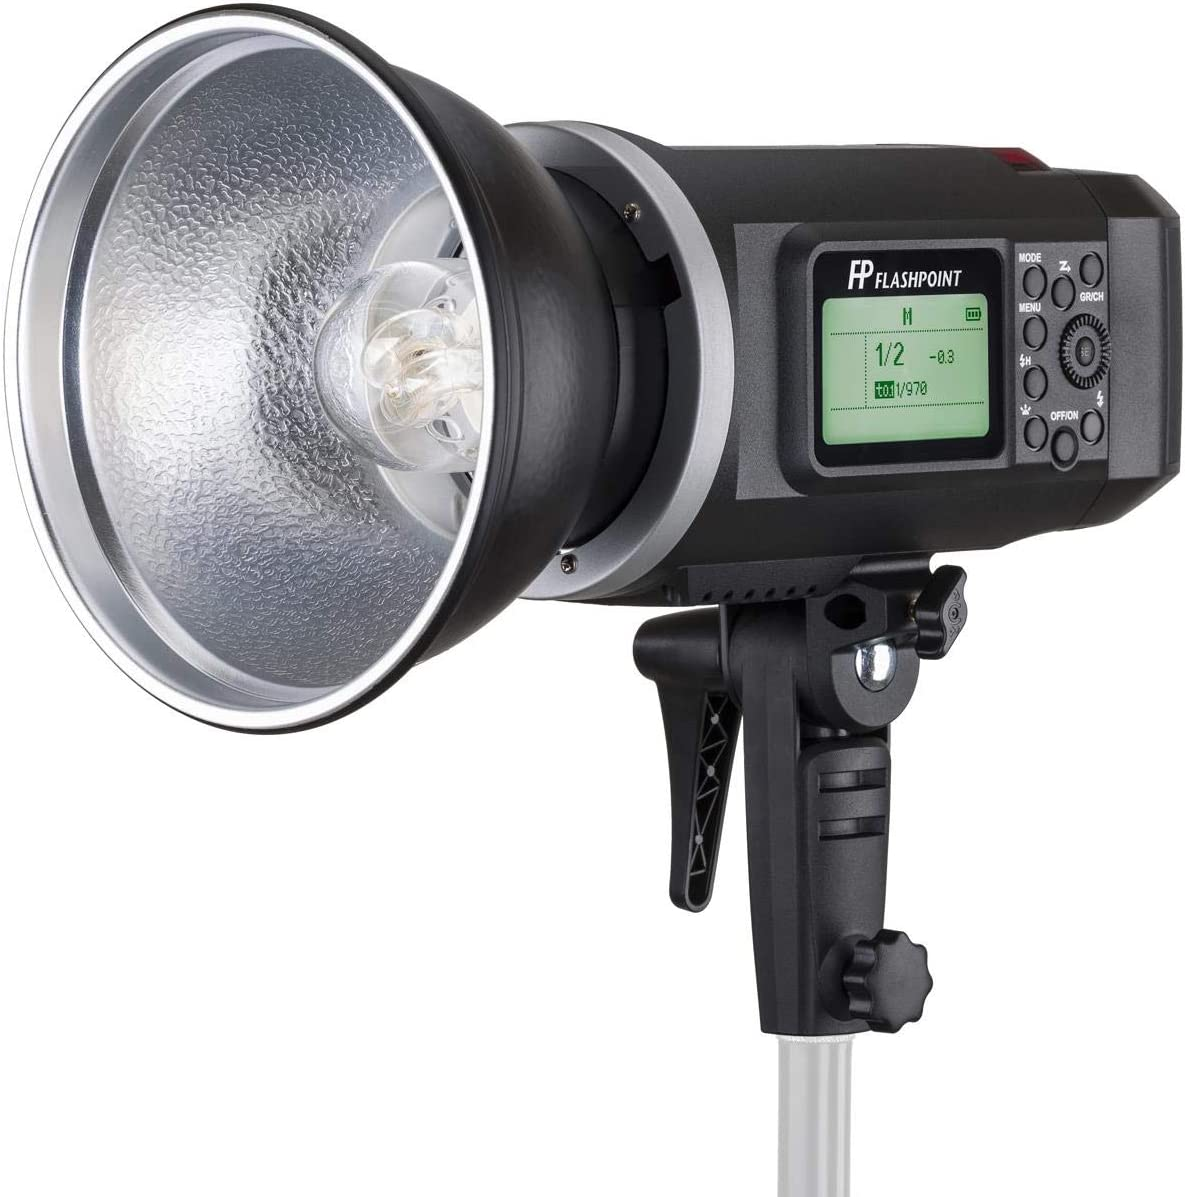 + Glow EZ Lock Octa Small Quick Softbox for Speedlite AD600 Flashpoint XPLOR 600 HSS Battery-Powered Monolight with Built-in R2 2.4GHz Radio Remote System Bowens Mount 36